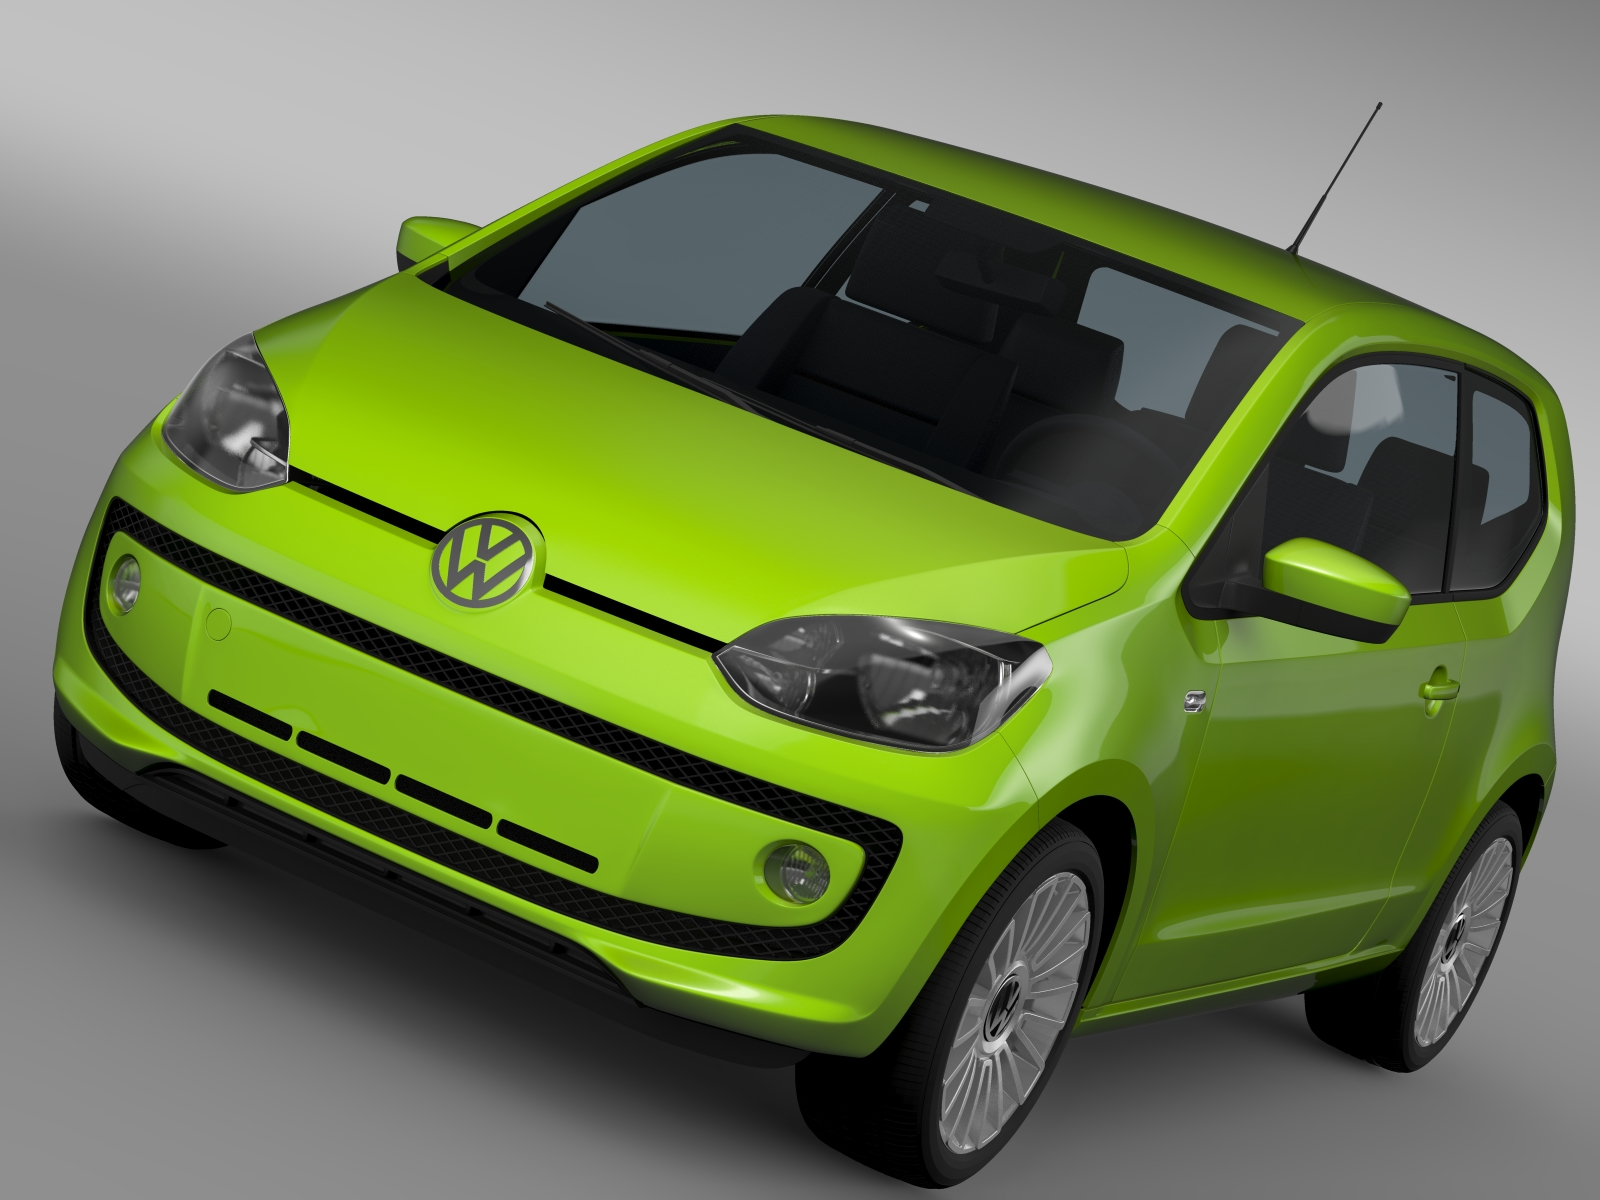 vw up ecofuel 3door 2015 3d model 3ds max fbx c4d lwo ma mb hrc xsi obj 213726